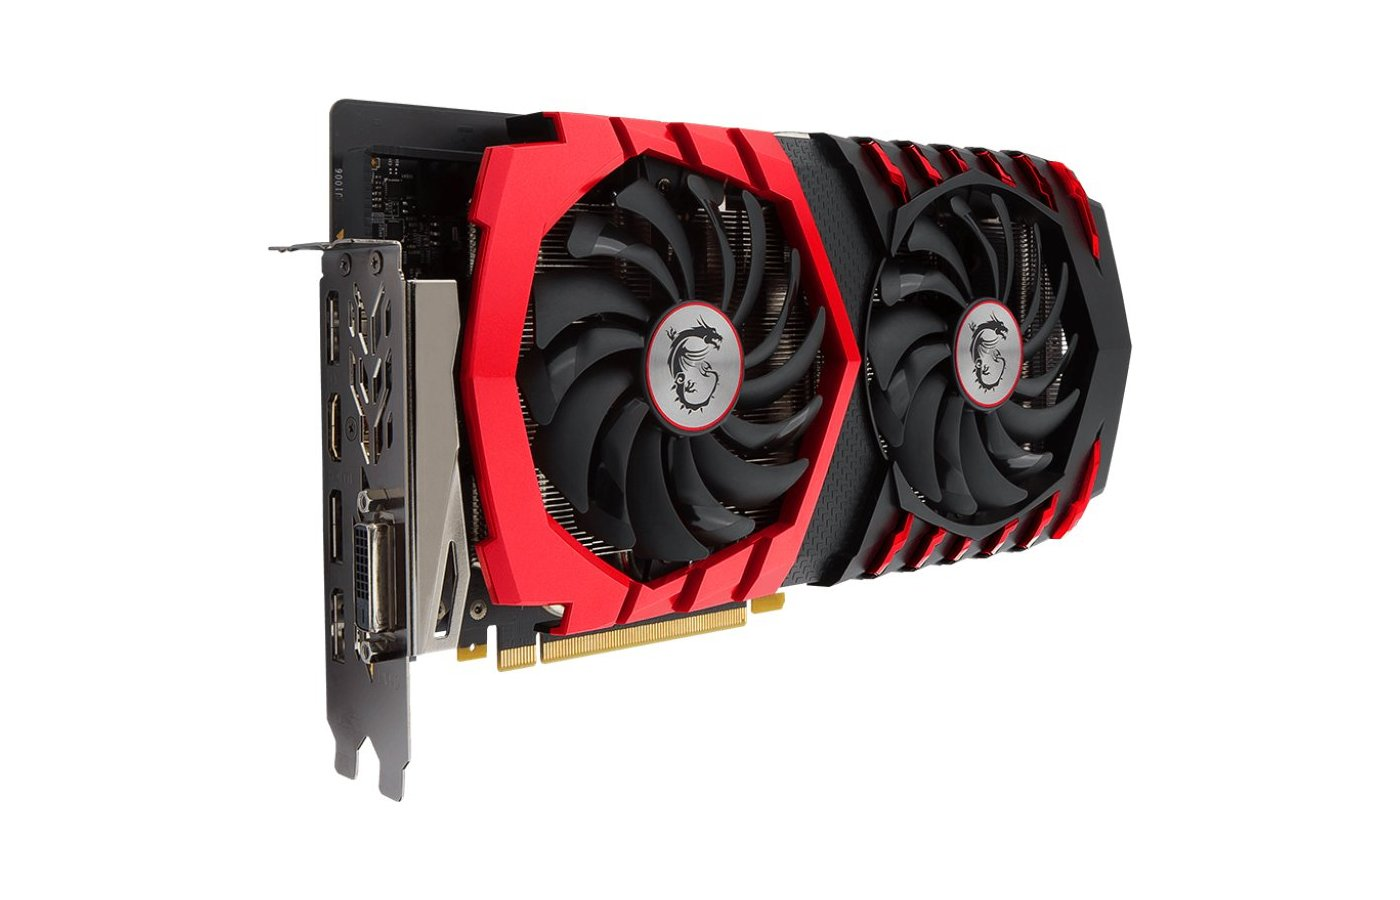 Видеокарта MSI PCI-E GTX 1060 GAMING X 6G nVidia GeForce GTX 1060 6144Mb 192bit Ret